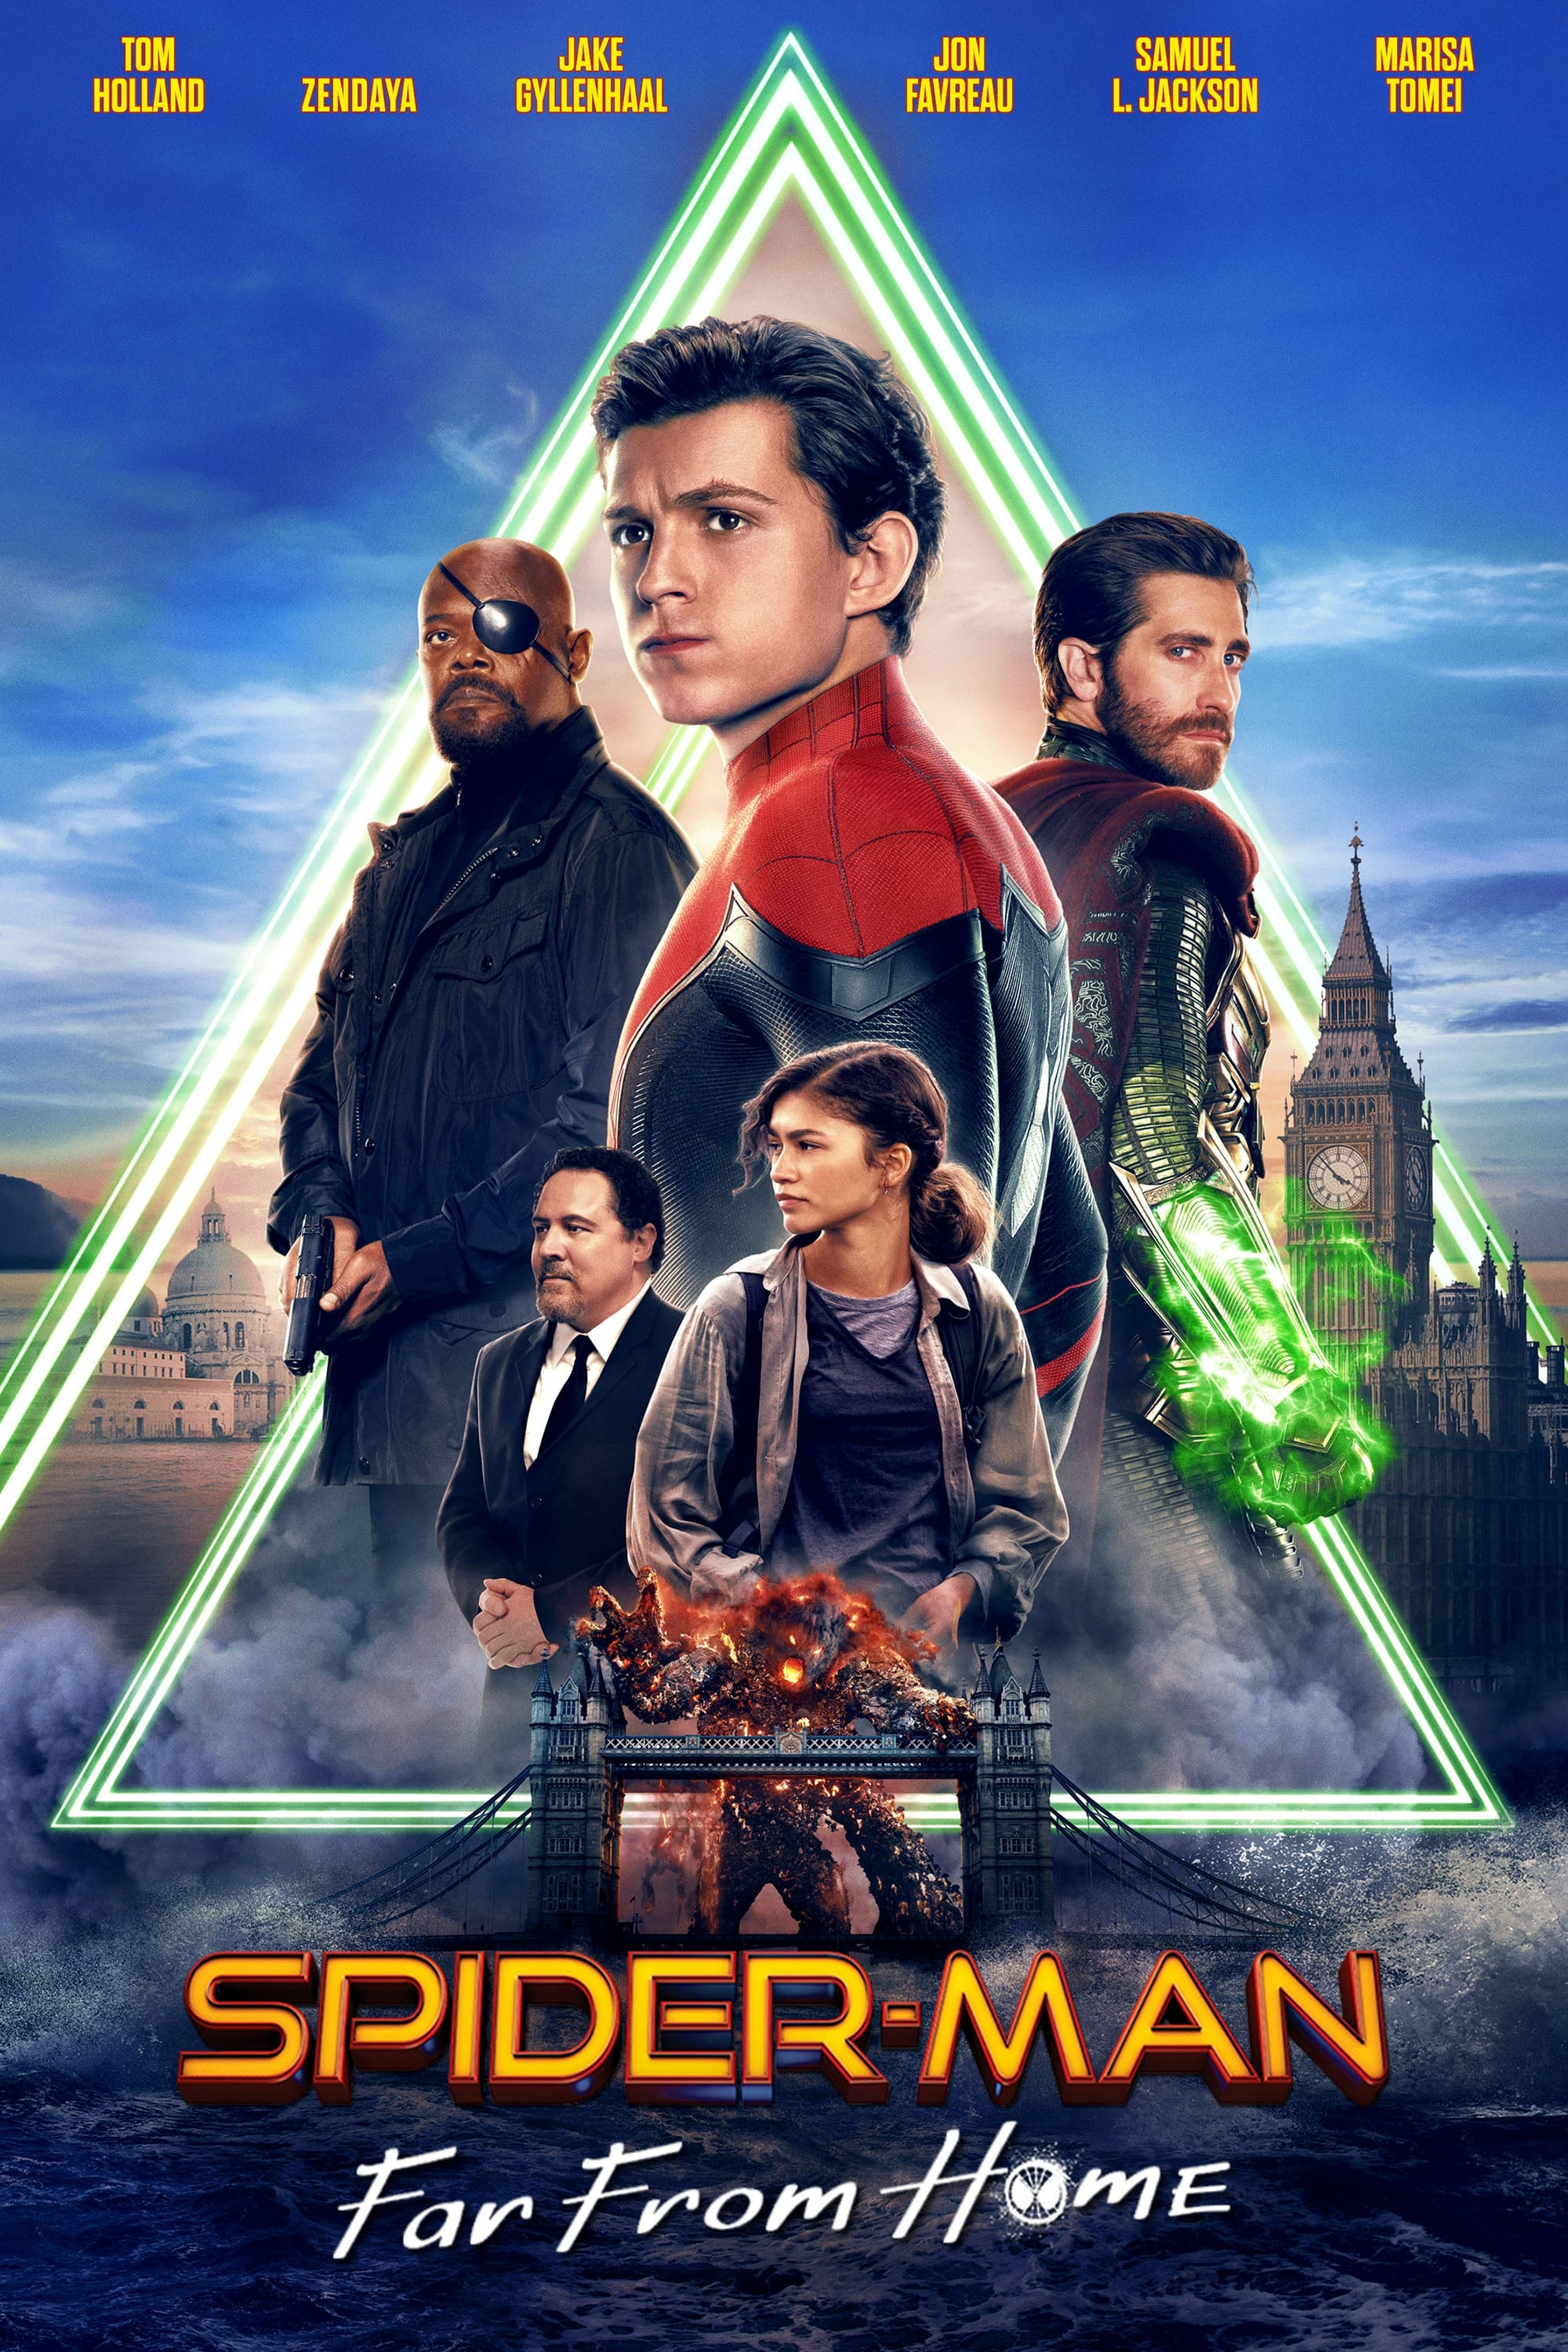 Spider-Man: Far from Home (2019) [Hindi 5.1+English 5.1] | x265 10Bit BluRay | 1080p | 720p | 480p | Download | Watch Online | GDrive | Direct Links